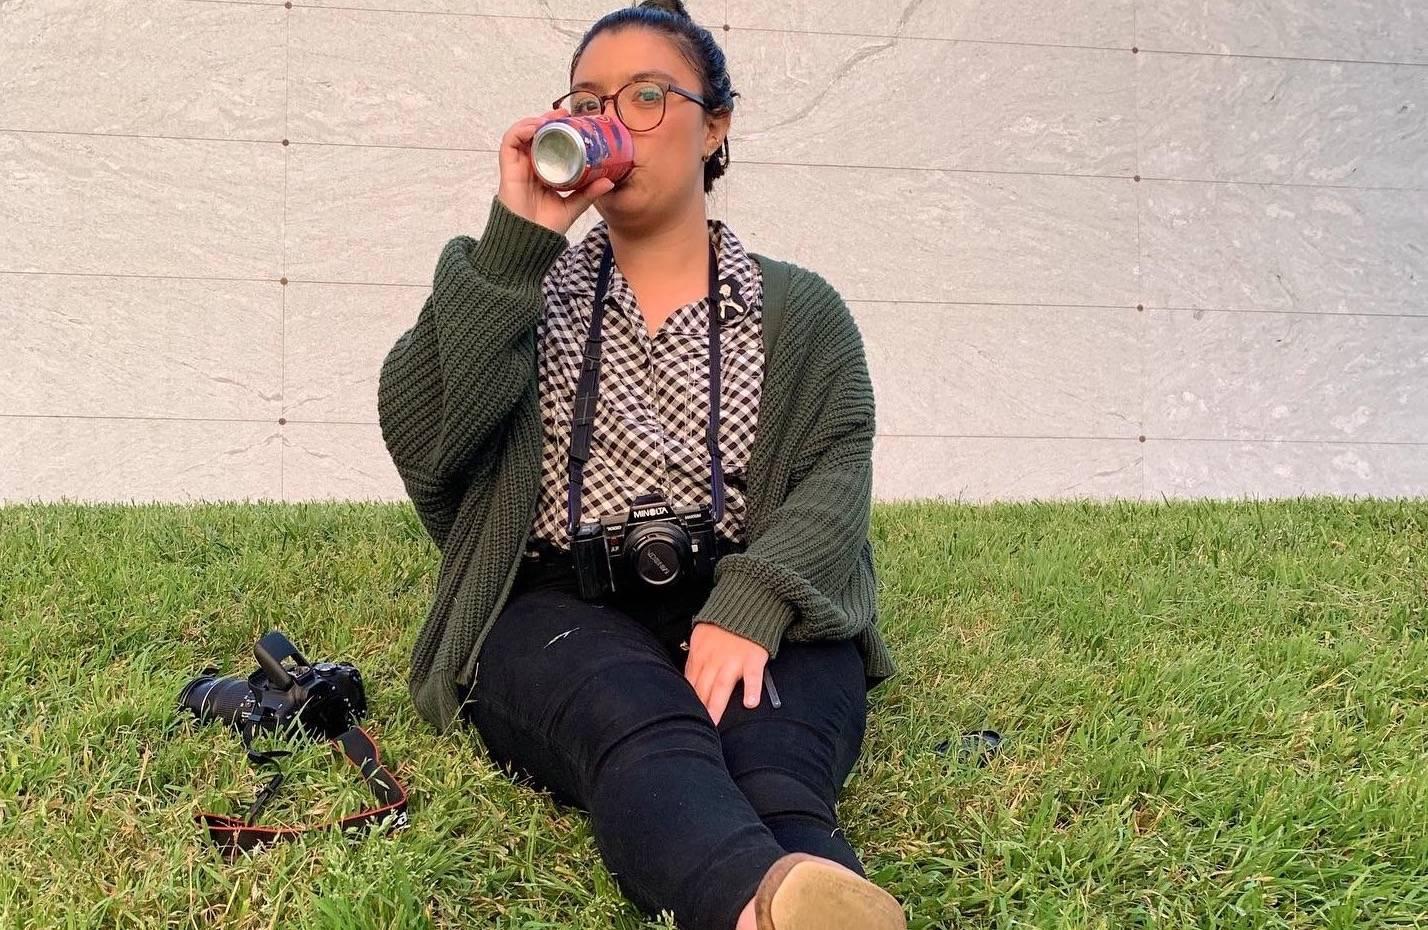 Reina is sitting on the grass next to a camera with one around her neck too. She has glasses on, her hair in a bun, and is sipping from a can.